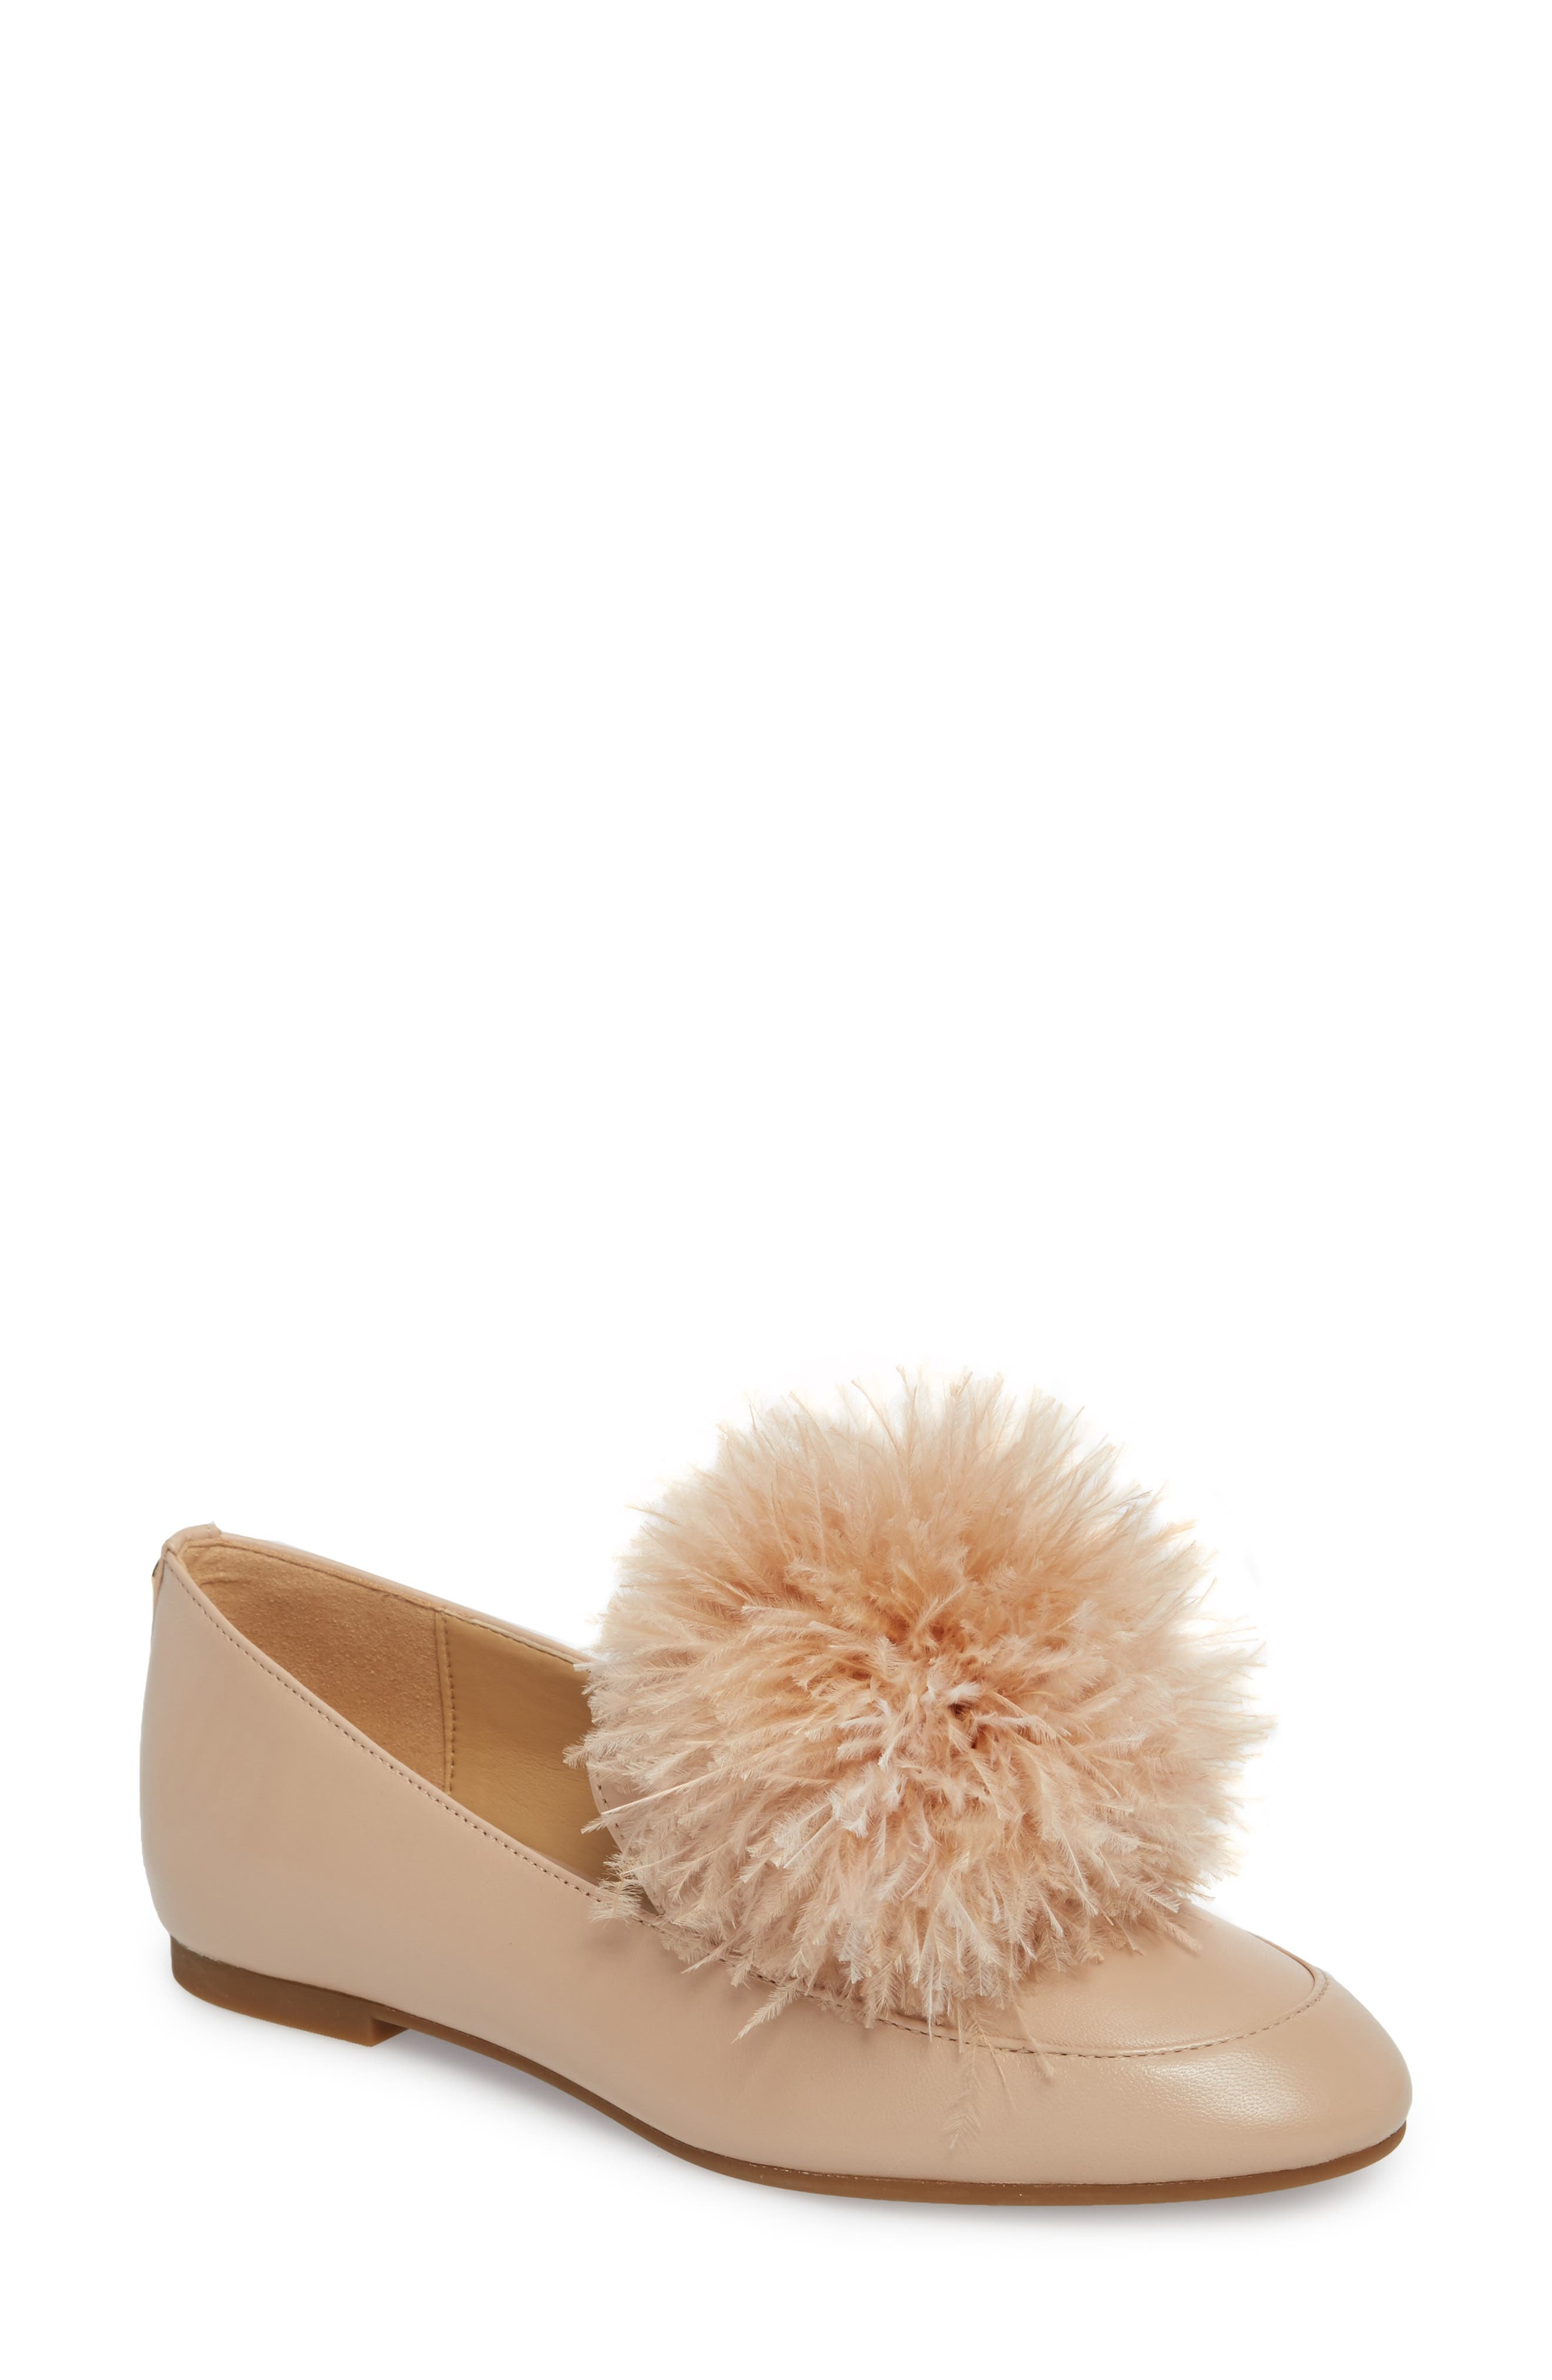 Fara Feather Pom Loafer,                             Main thumbnail 2, color,